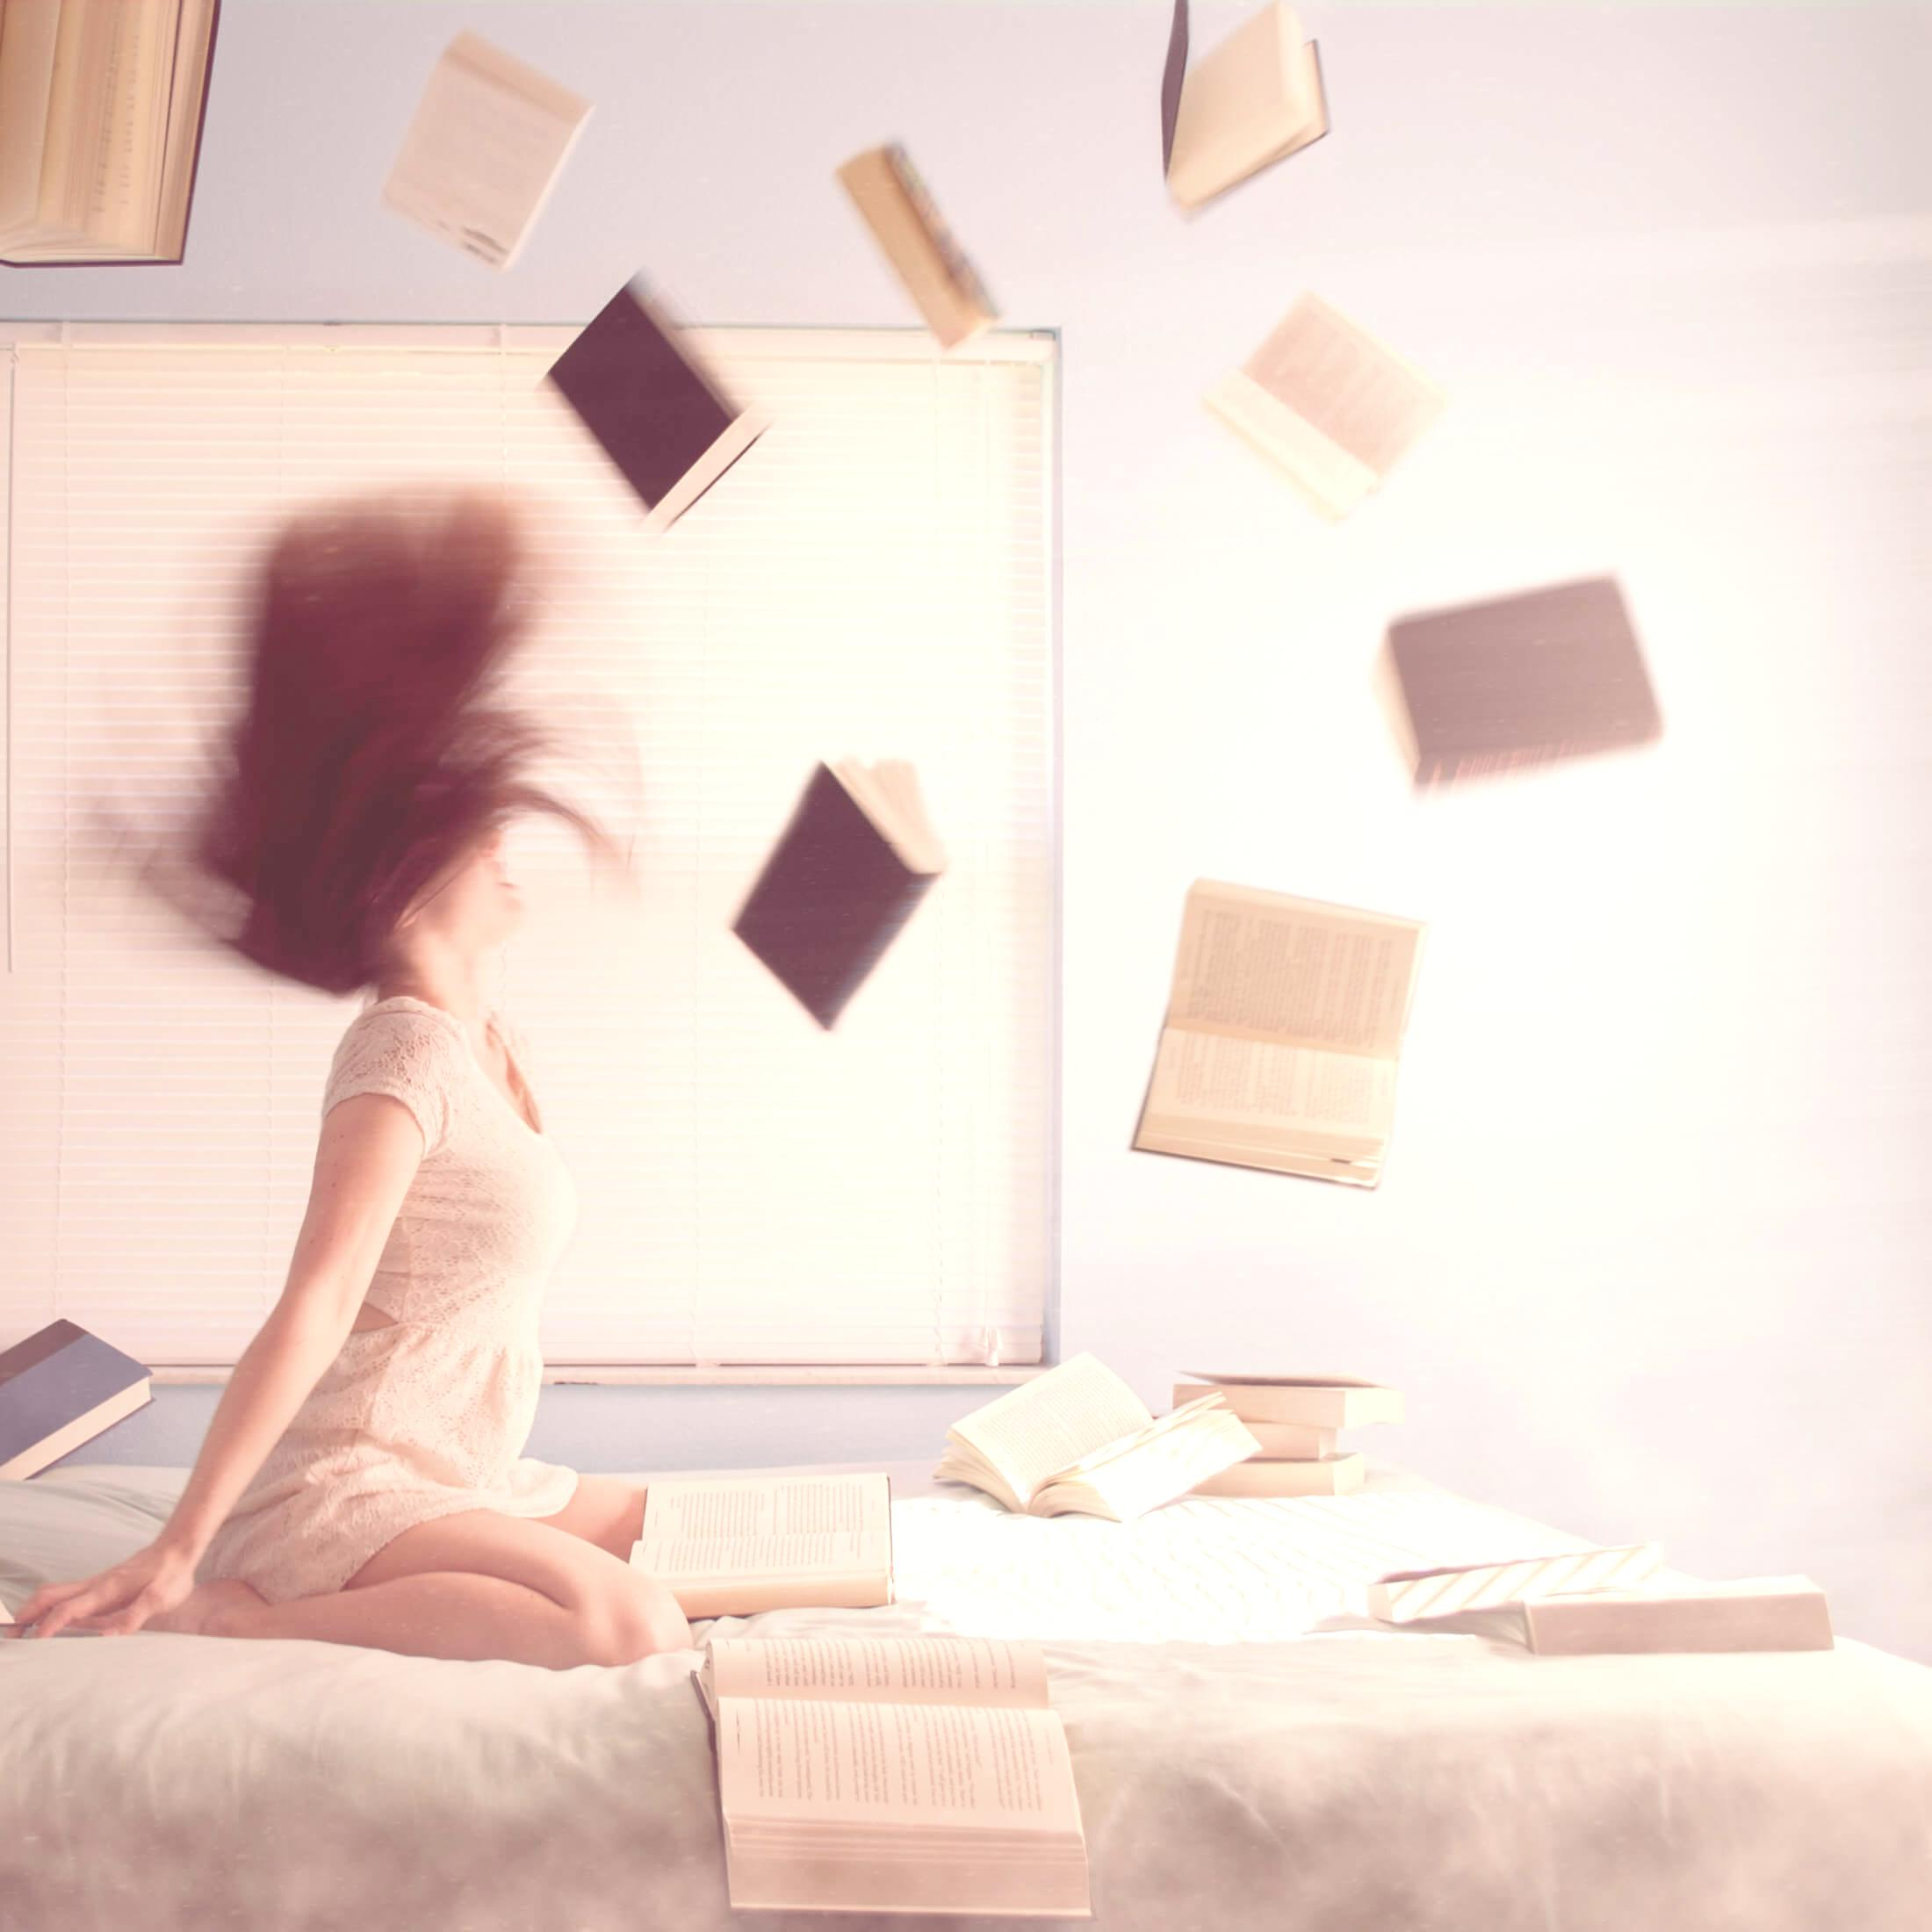 KonMari Method - Wake Up Your Books. Woman Sitting On Bed With Books Floating Like Magic. Photo by Lacie Slezak on Unsplash.